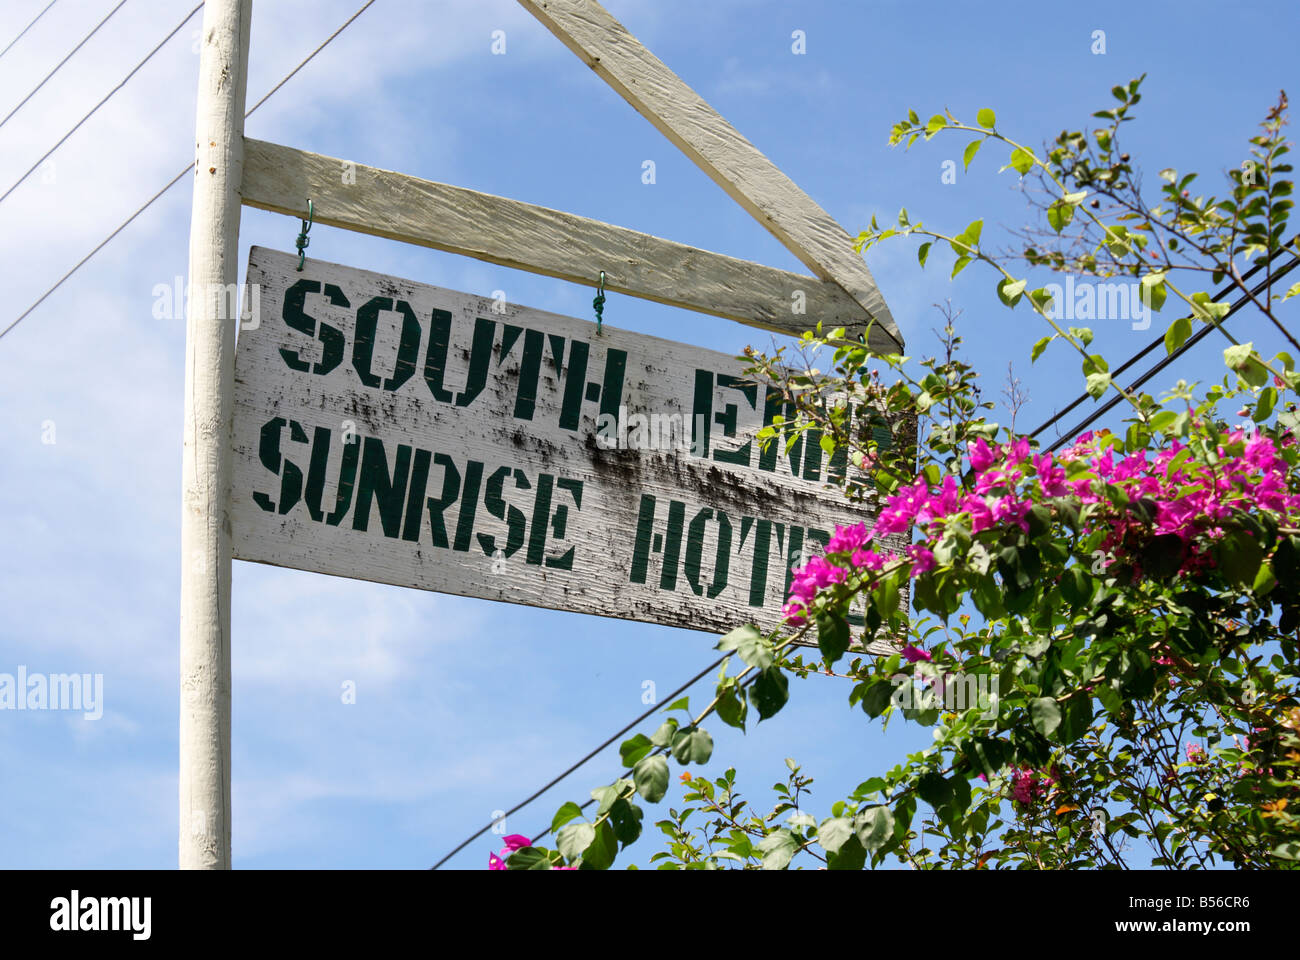 South End Sunrise Hotel wooden sign and bougainvillea on Big Corn Island, Nicaragua, Central America Stock Photo